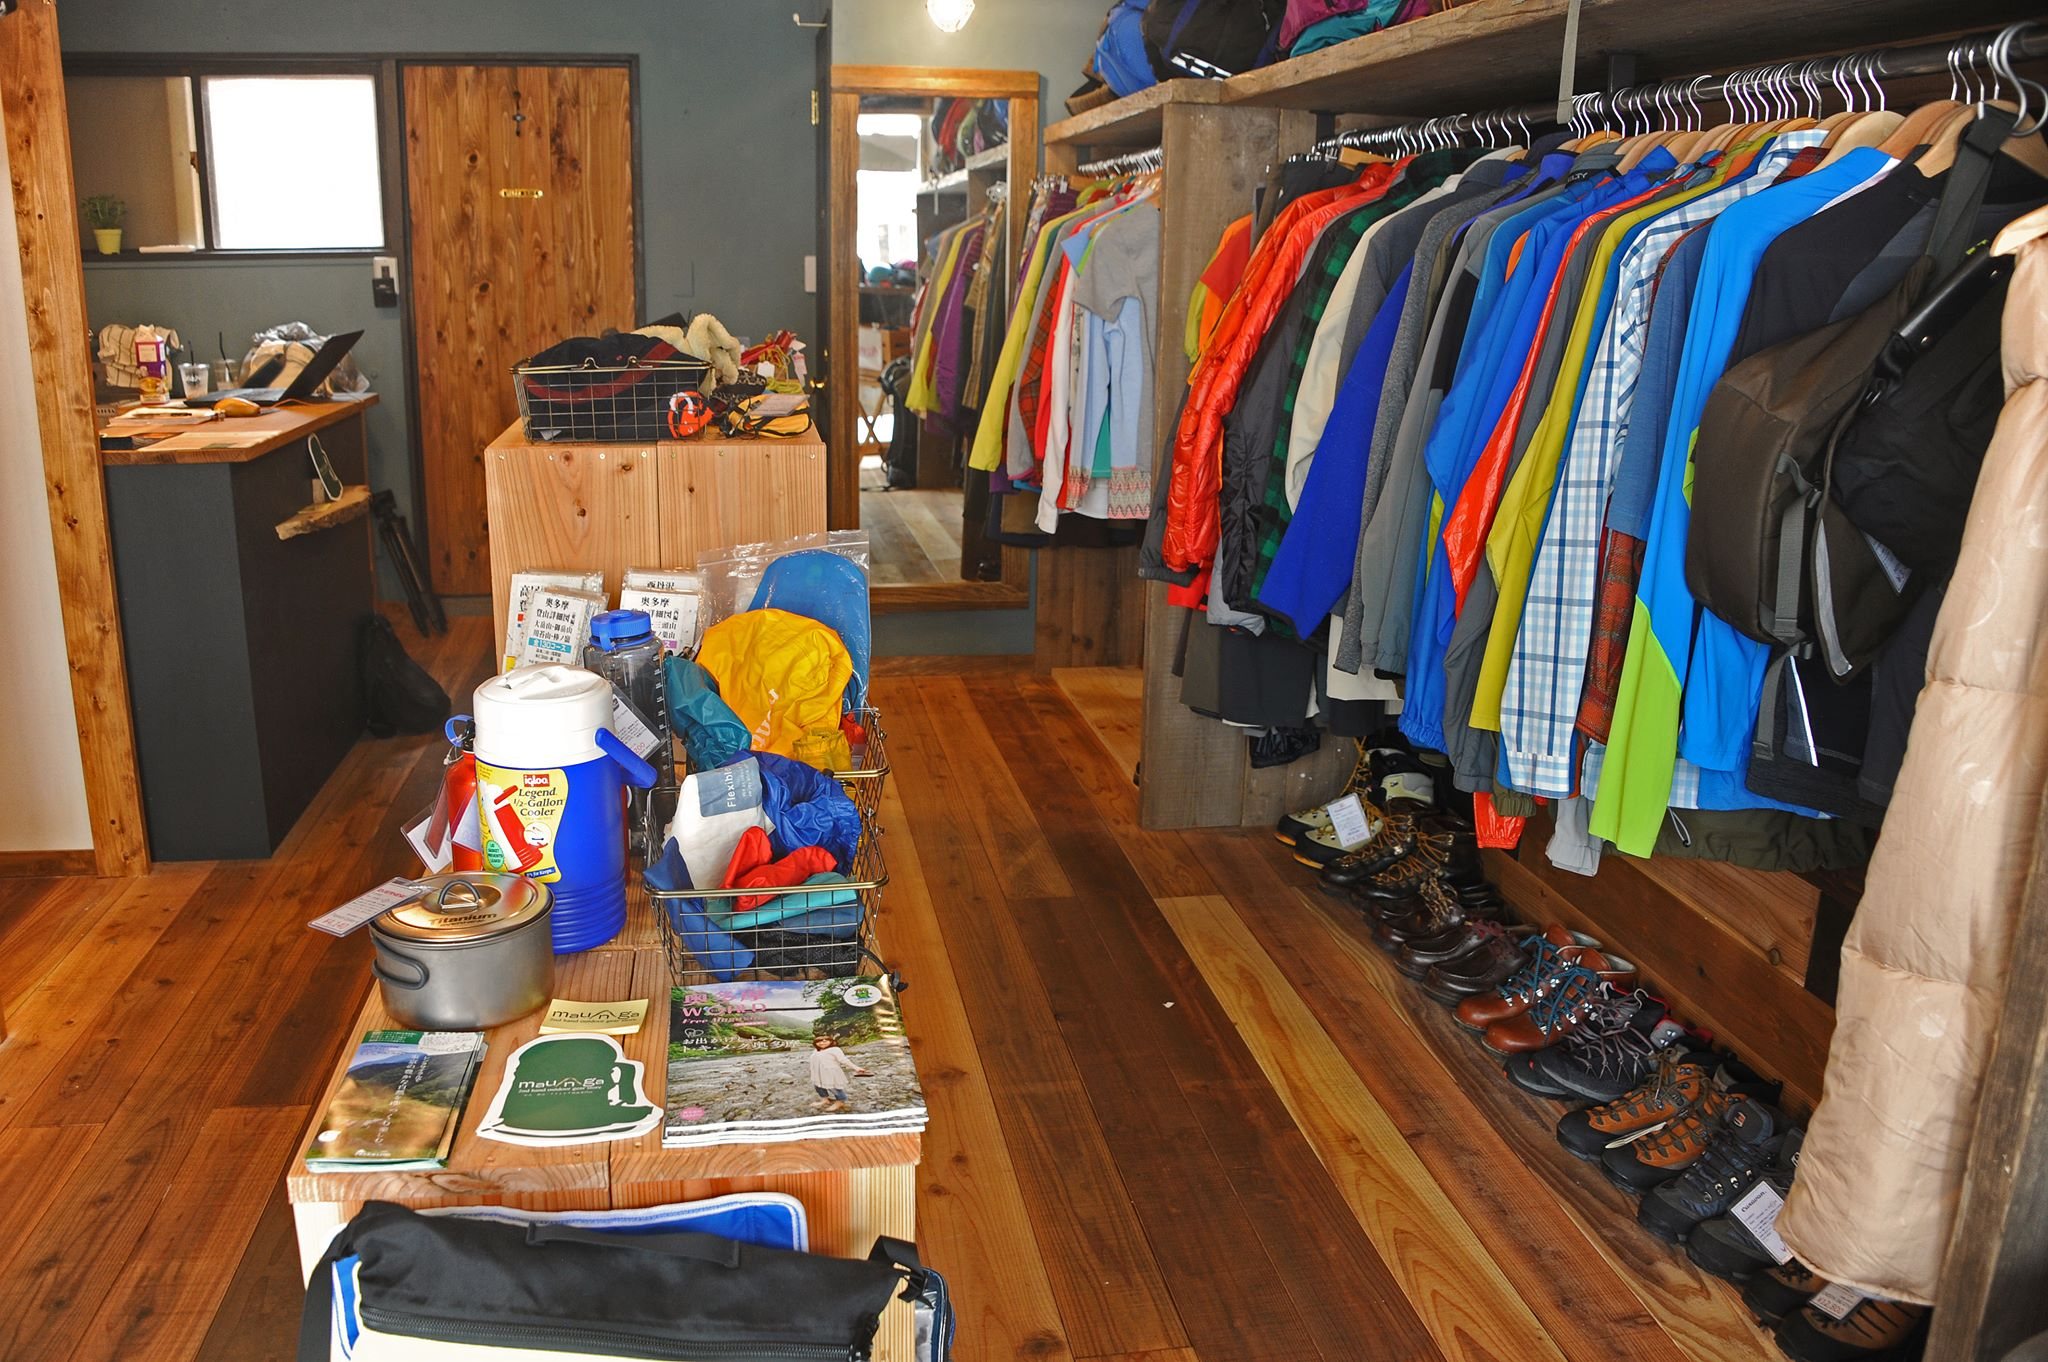 2nd hand outdoor gear store maunga 吉祥寺店